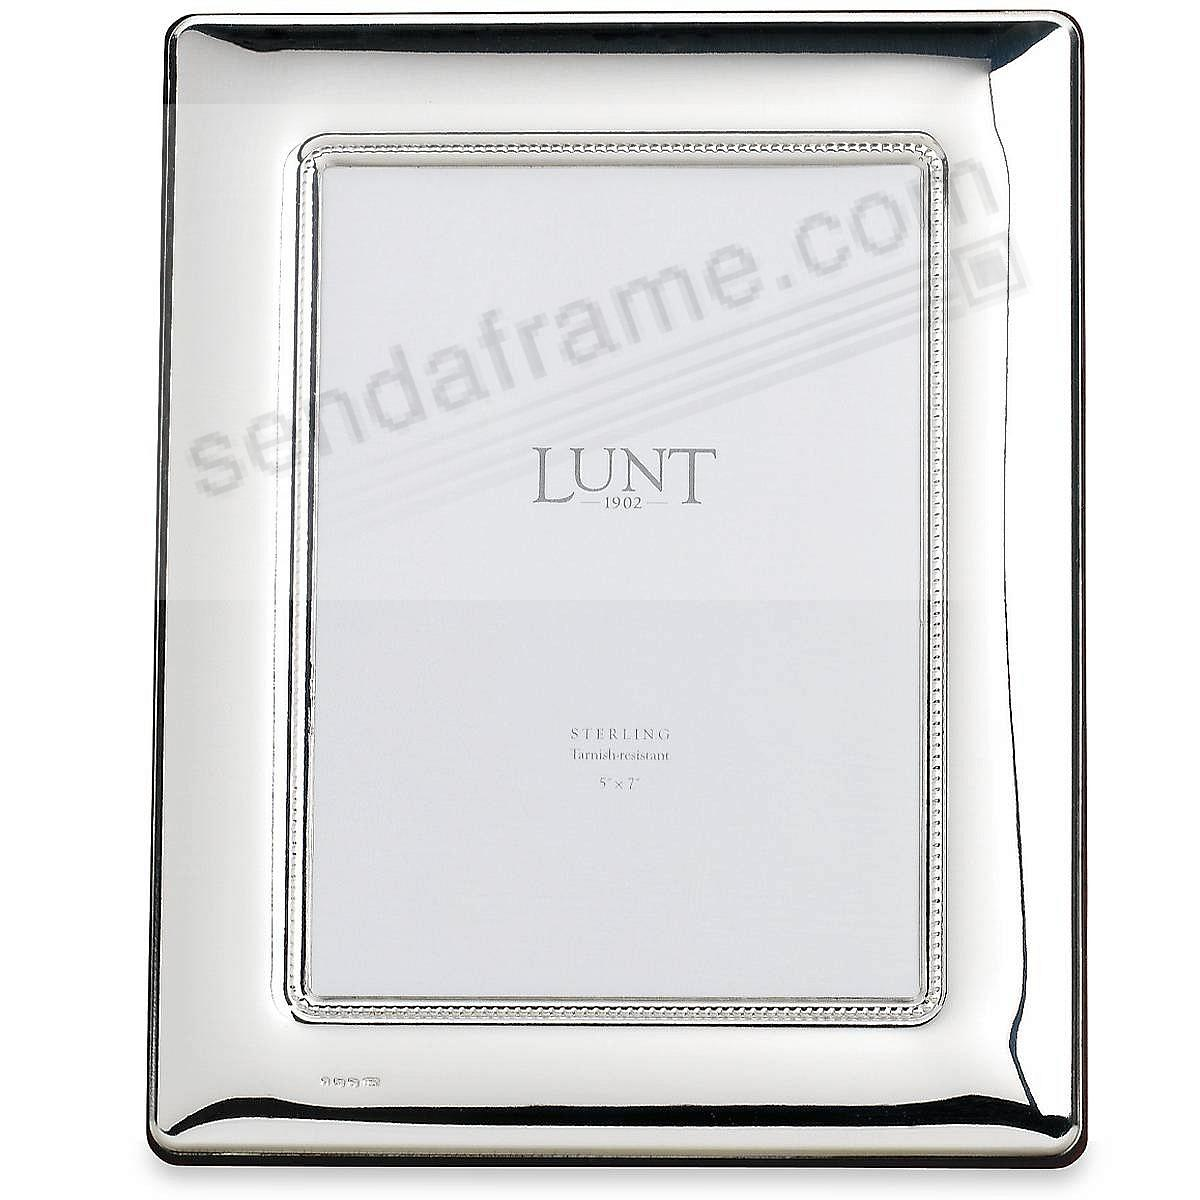 ESTATE GALLERY fine Sterling Silver 5x7 frame by Lunt Silversmiths ...